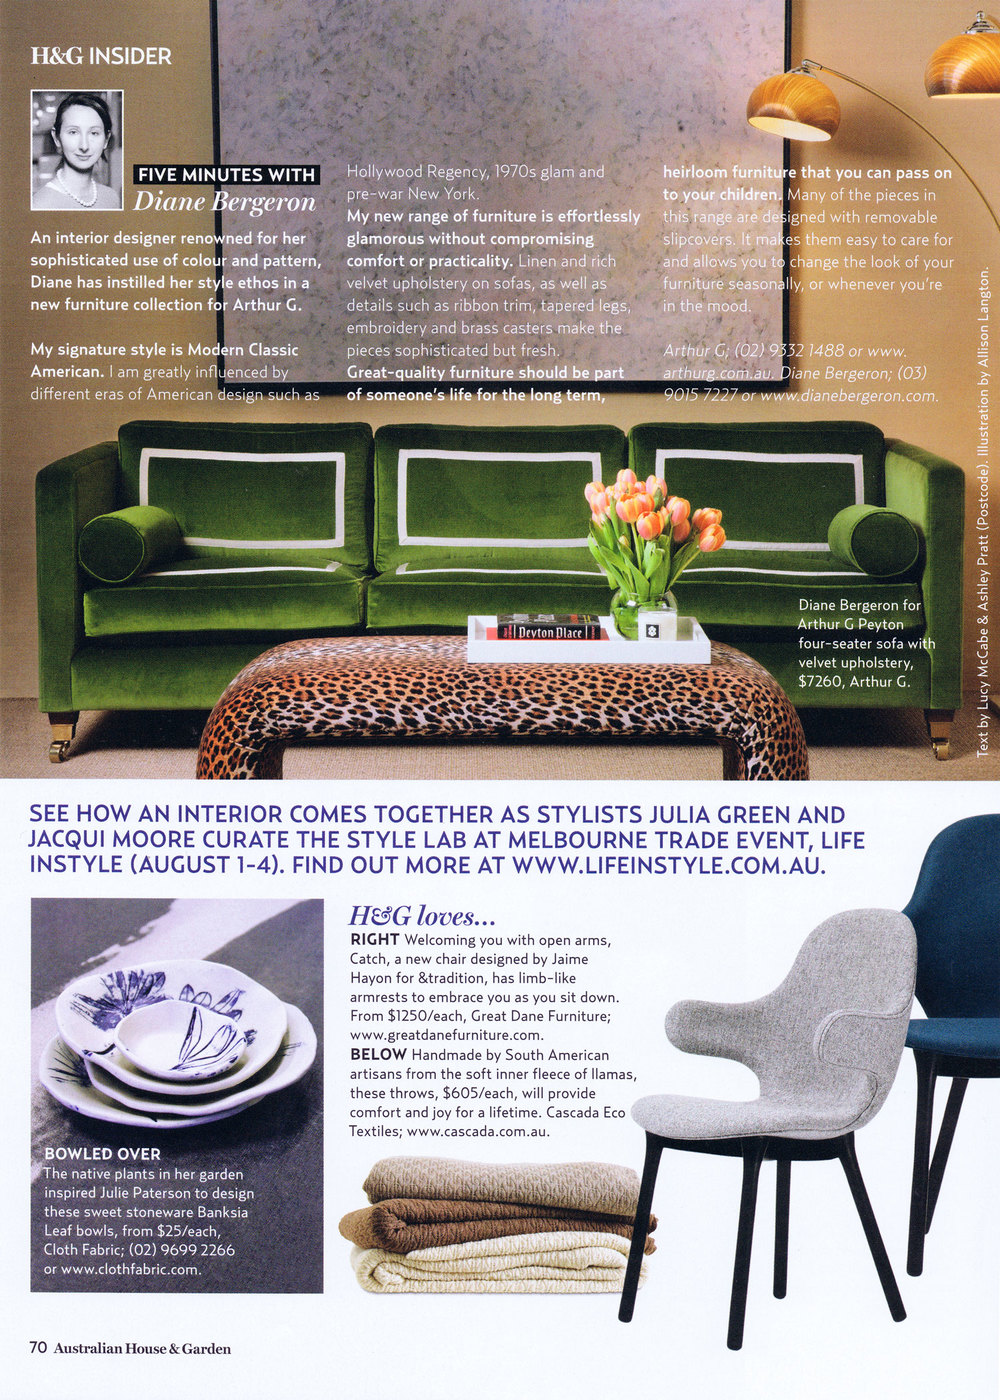 Australian-House-and-Garden-August-2013-page.jpg